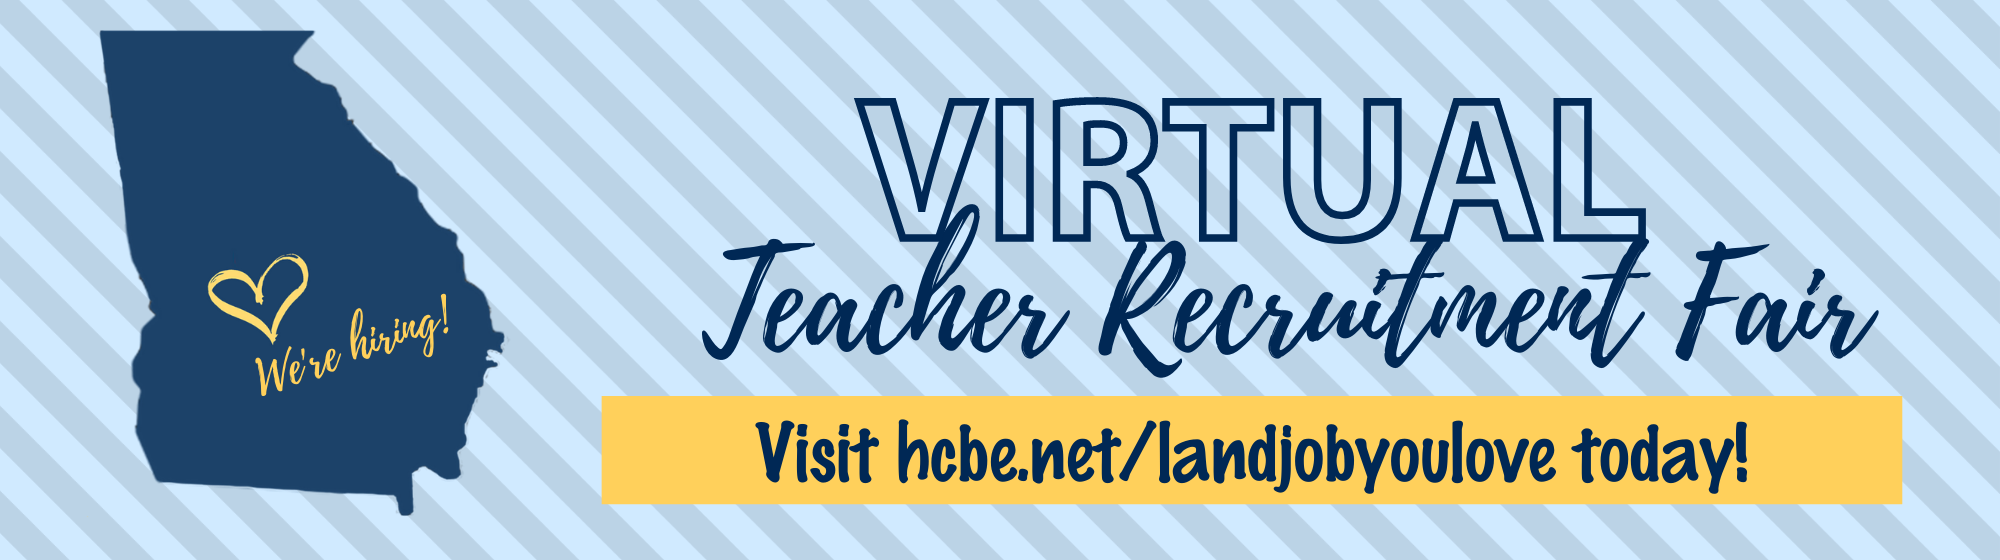 Virtual Teacher Recruitment Fair